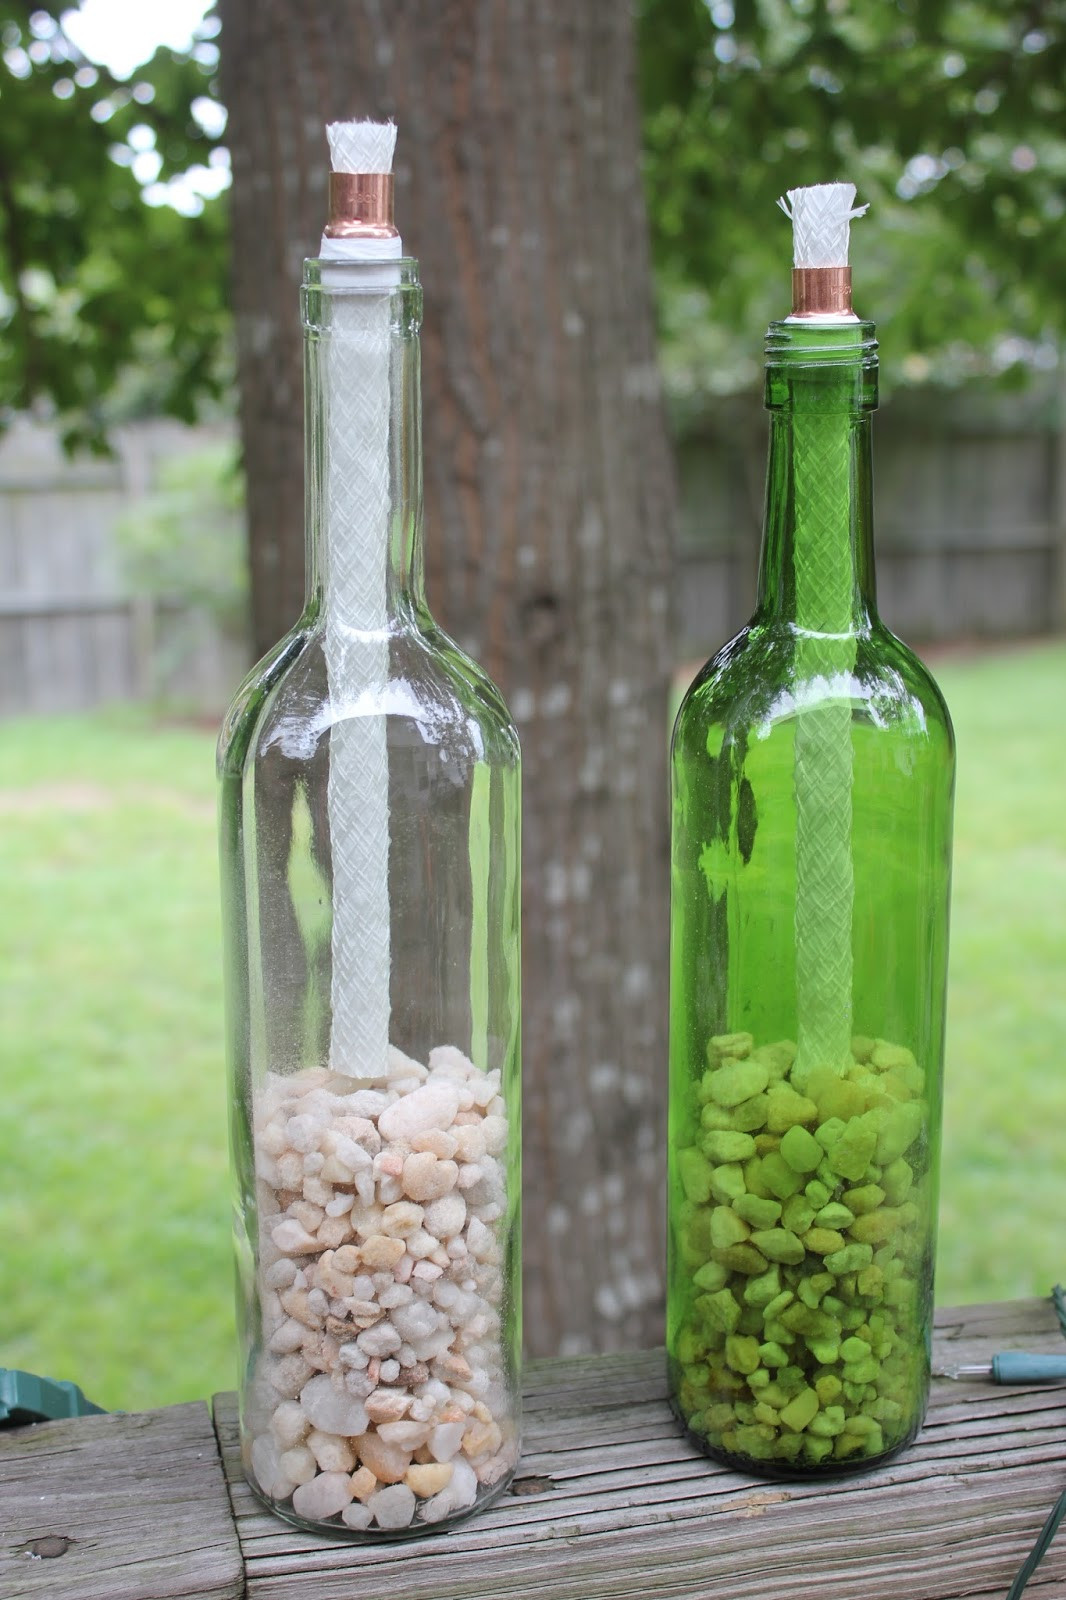 Best ideas about DIY Wine Bottle . Save or Pin Magnolia & Main DIY Wine Bottle TIki Torches Now.